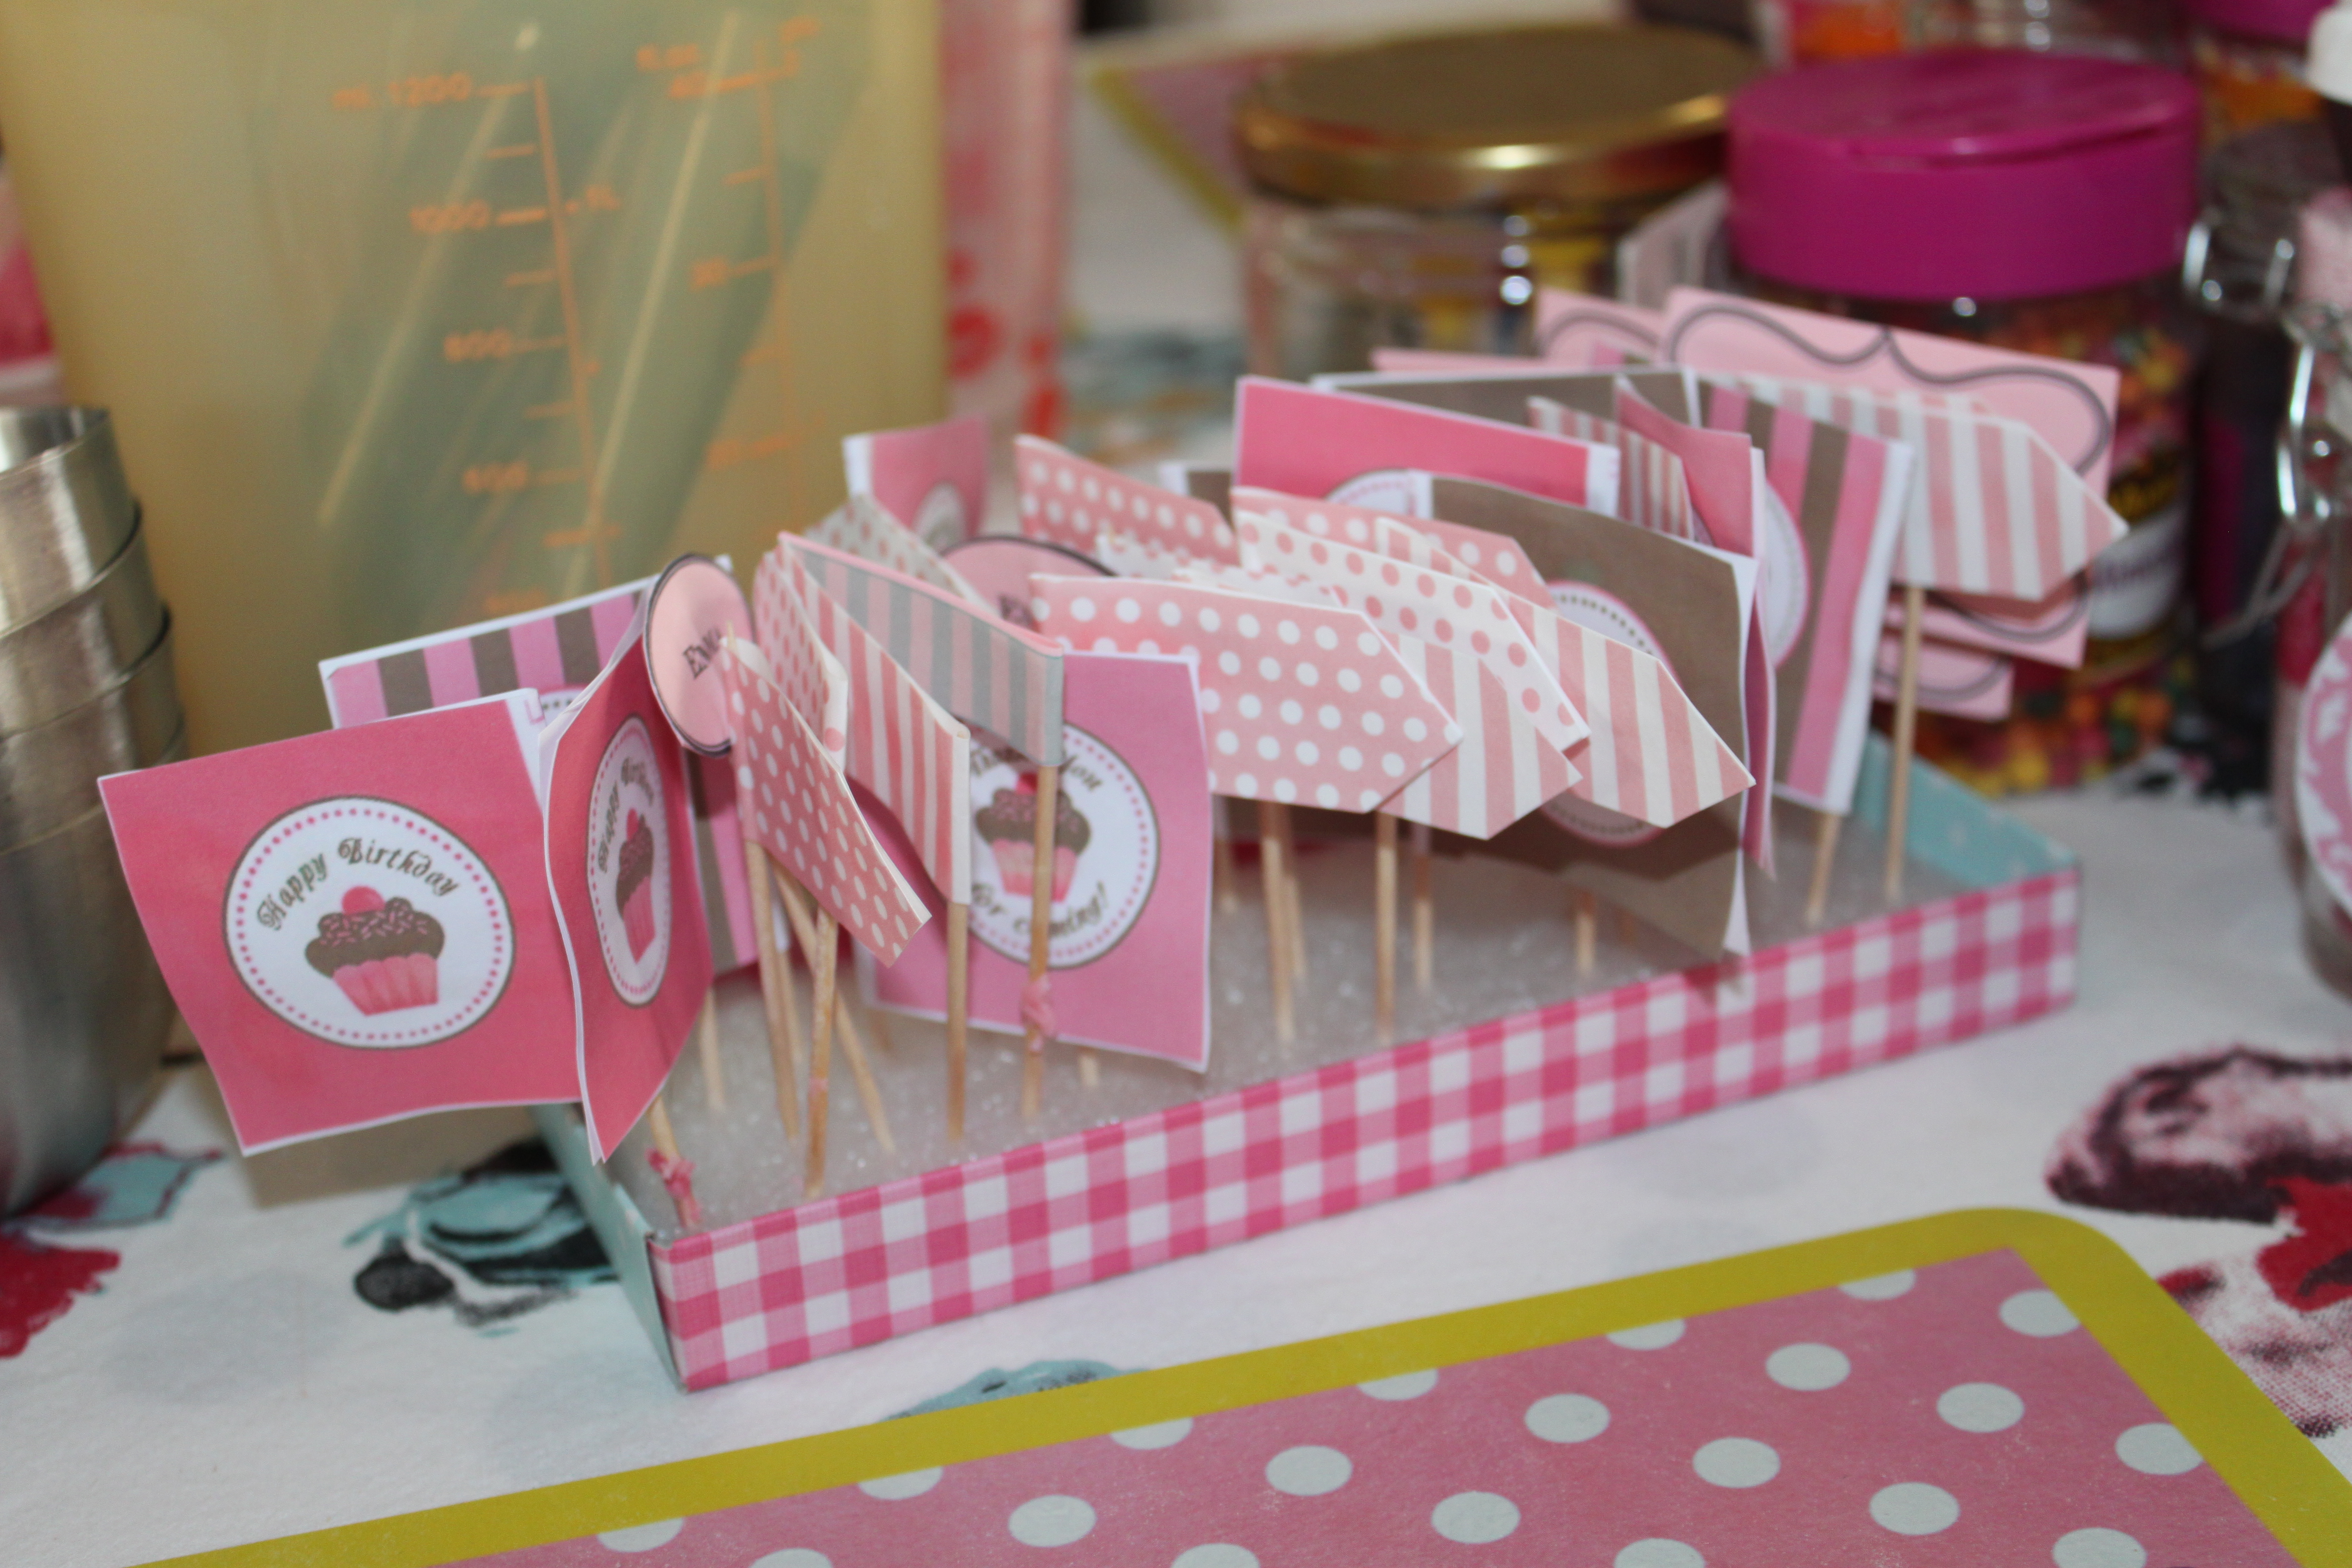 Decoration Anniversaire Girly Créer Une Sweet Table Très Girly La Fabricamania